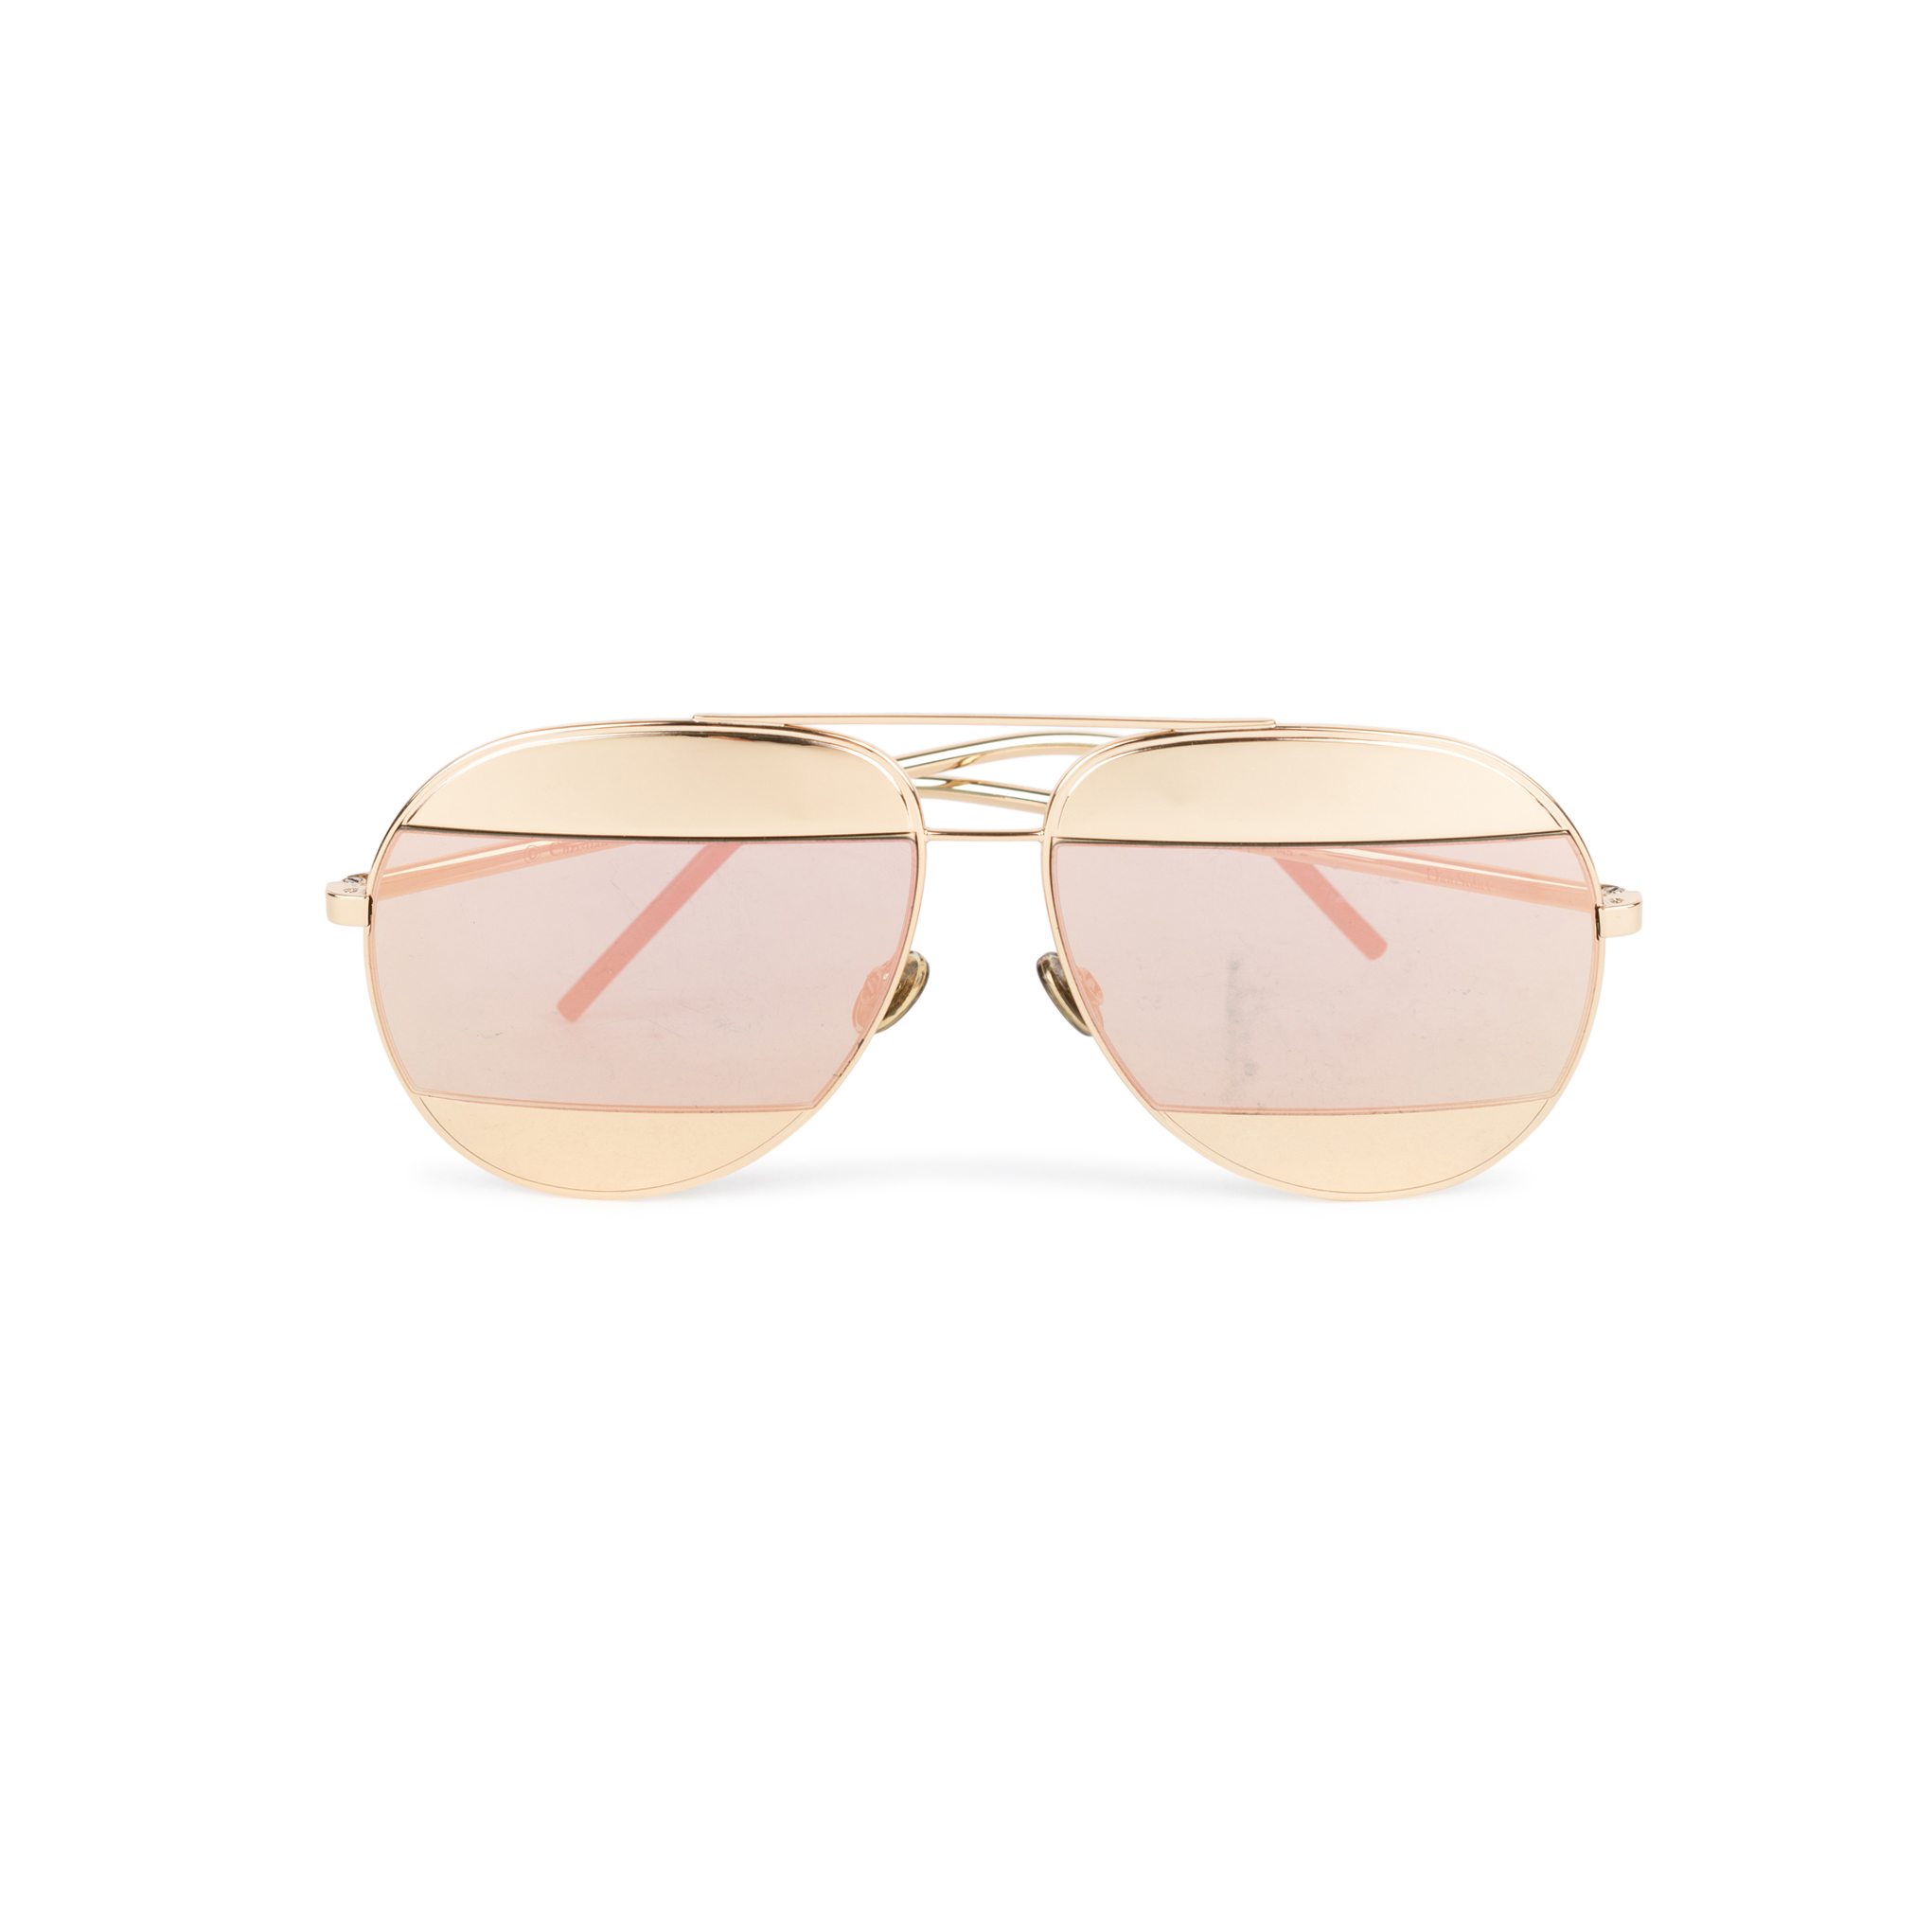 6082dee387d66b Authentic Second Hand Christian Dior Dior Split 1 Sunglasses (PSS-552-00017)  | THE FIFTH COLLECTION